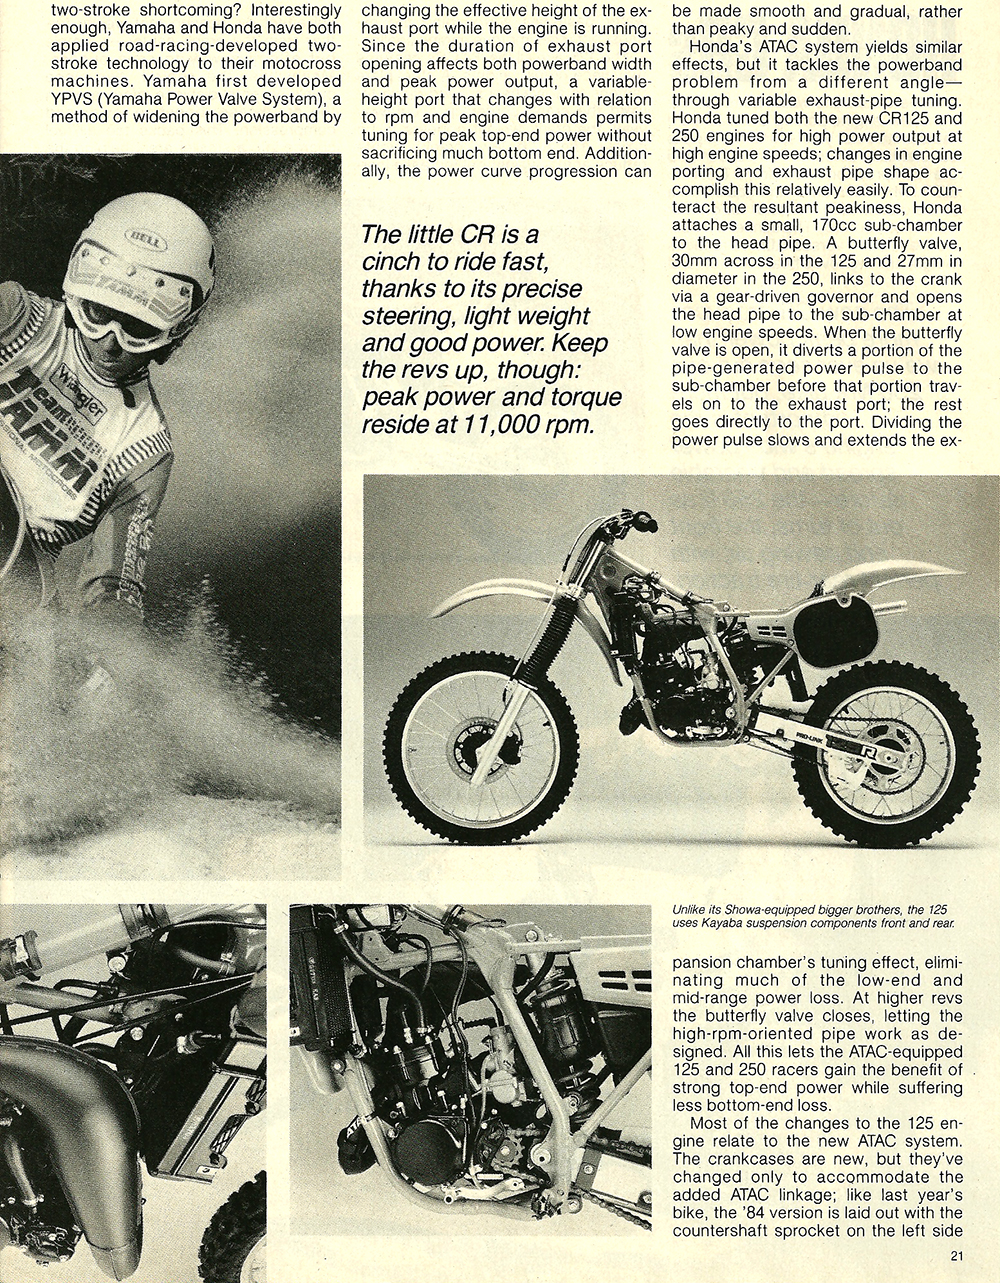 1984 Honda CR 125 250 500 road test 04.jpg